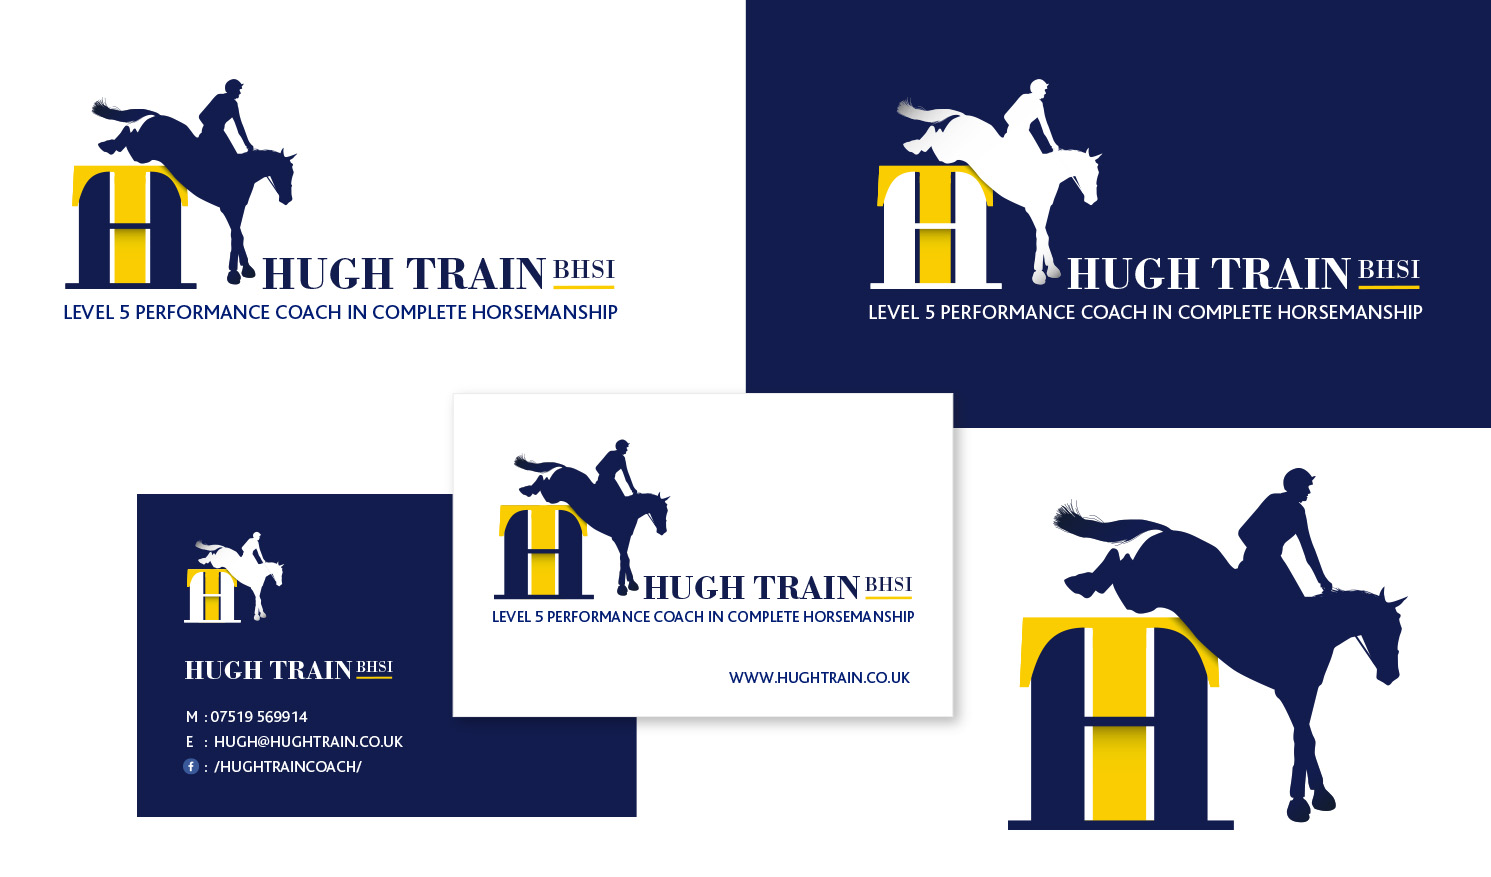 Why business cards are so important for your equestrian business